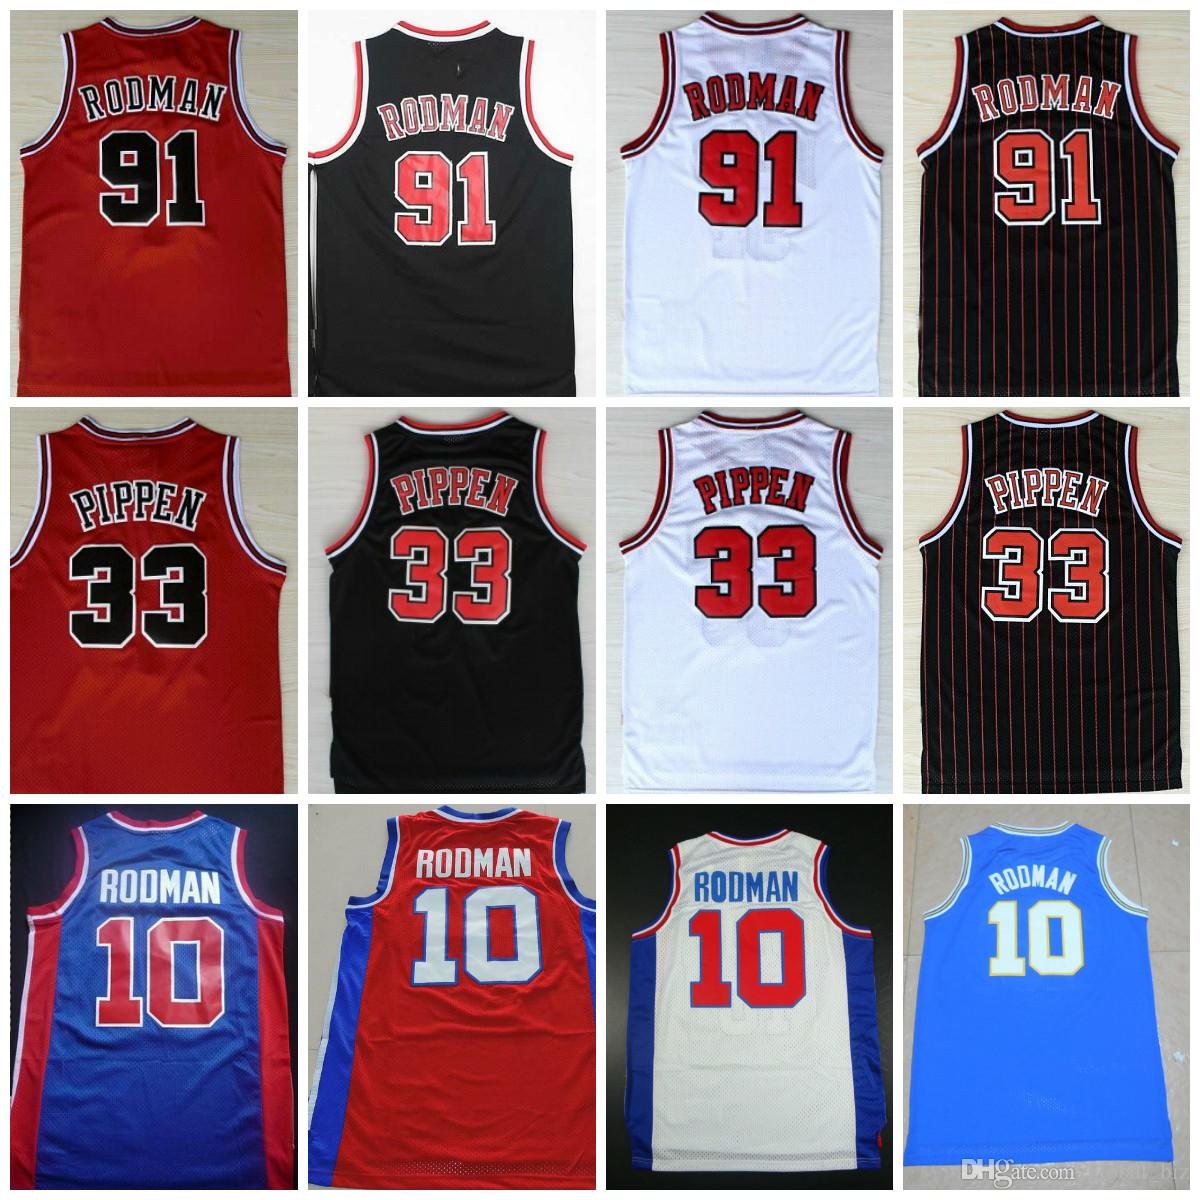 check out ee8d4 31cc8 Oklahoma Savages 91 Dennis Rodman Jersey The Worm 10 Dennis Rodman Mens 33  Scottie Pippen Jerseys Stitched Red White Black Shirts S-XXXL